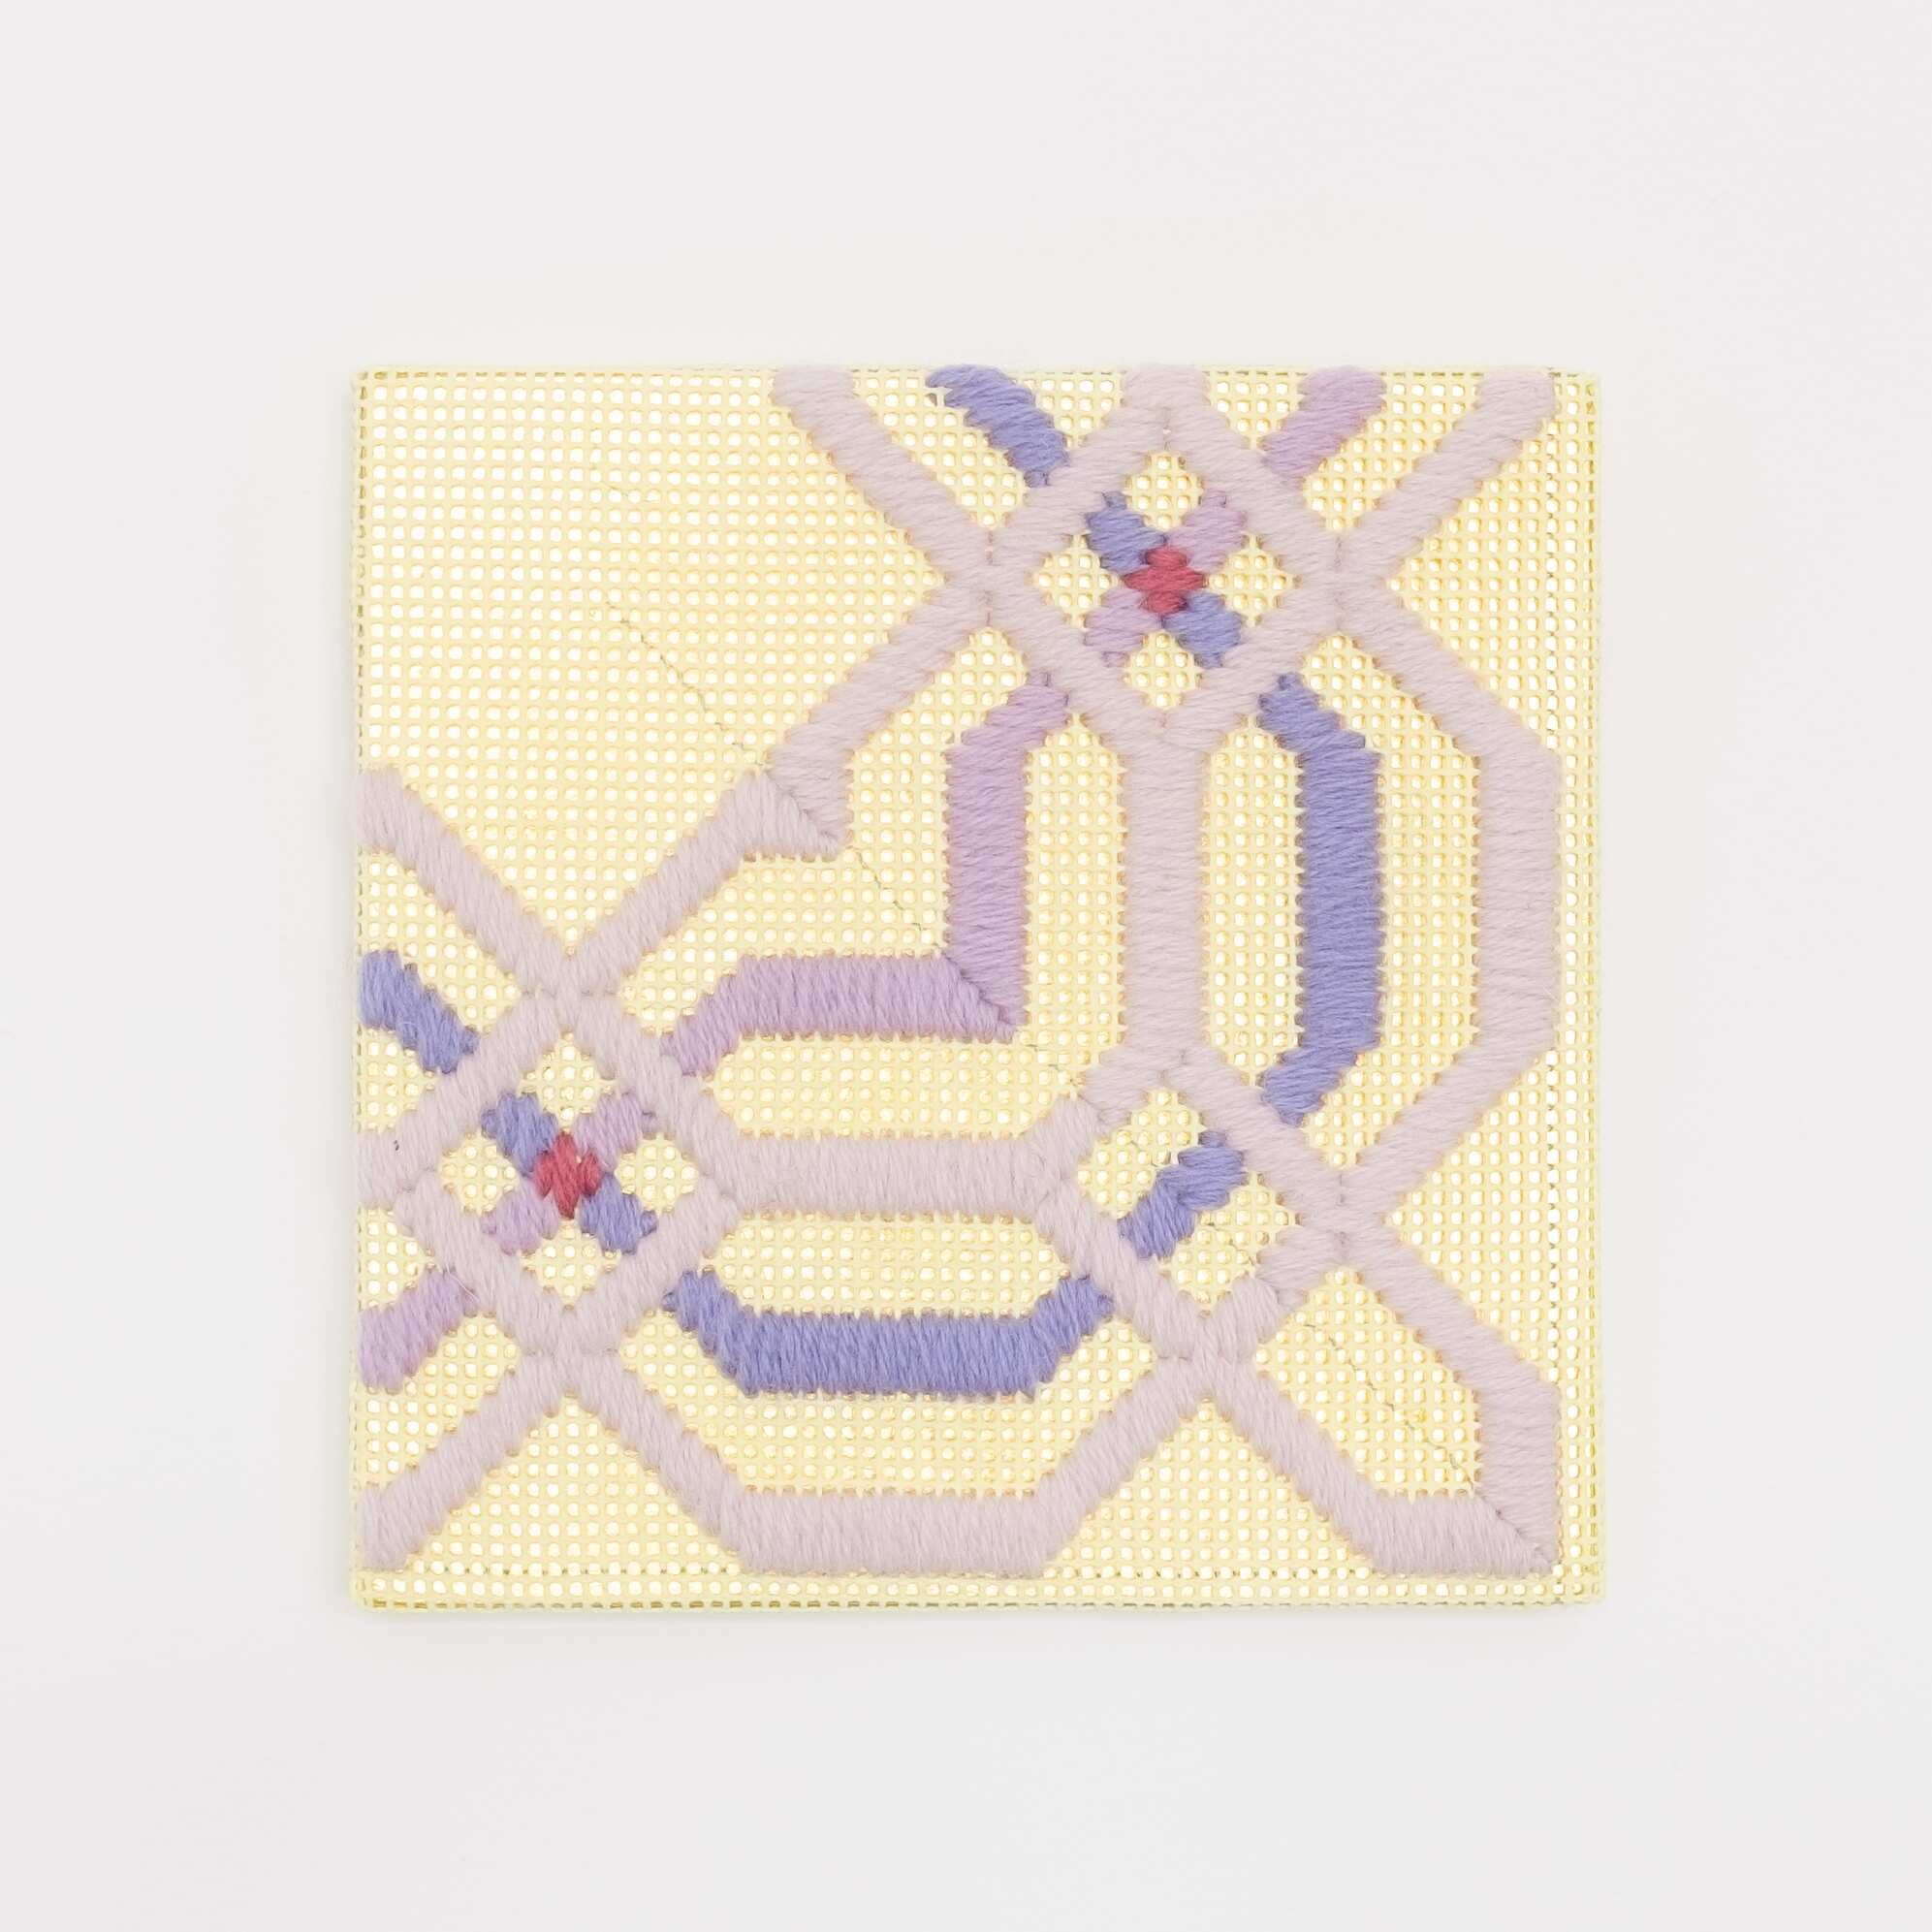 Border fragment [purple on yellow], Hand-embroidered wool thread and acrylic paint on canvas over gilded panel, 2021